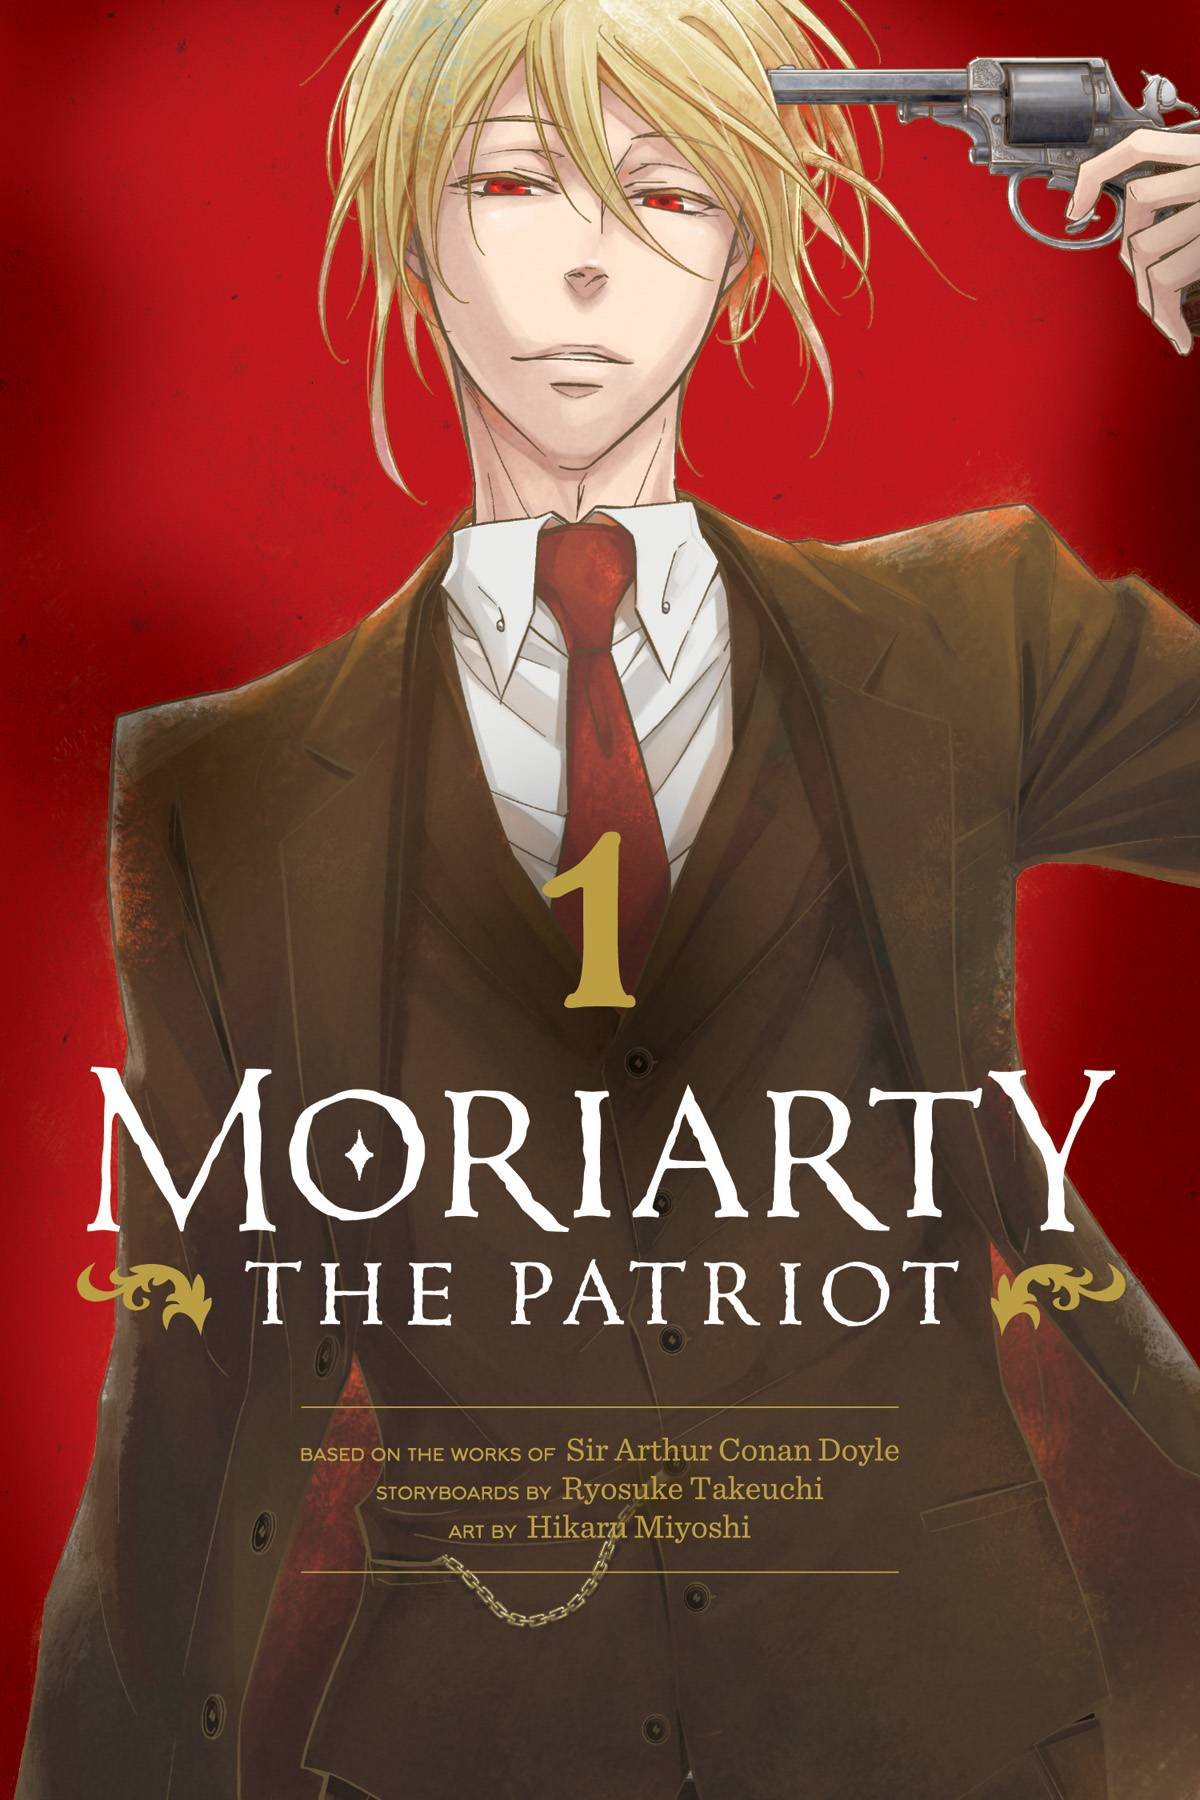 MORIARTY THE PATRIOT GN 01